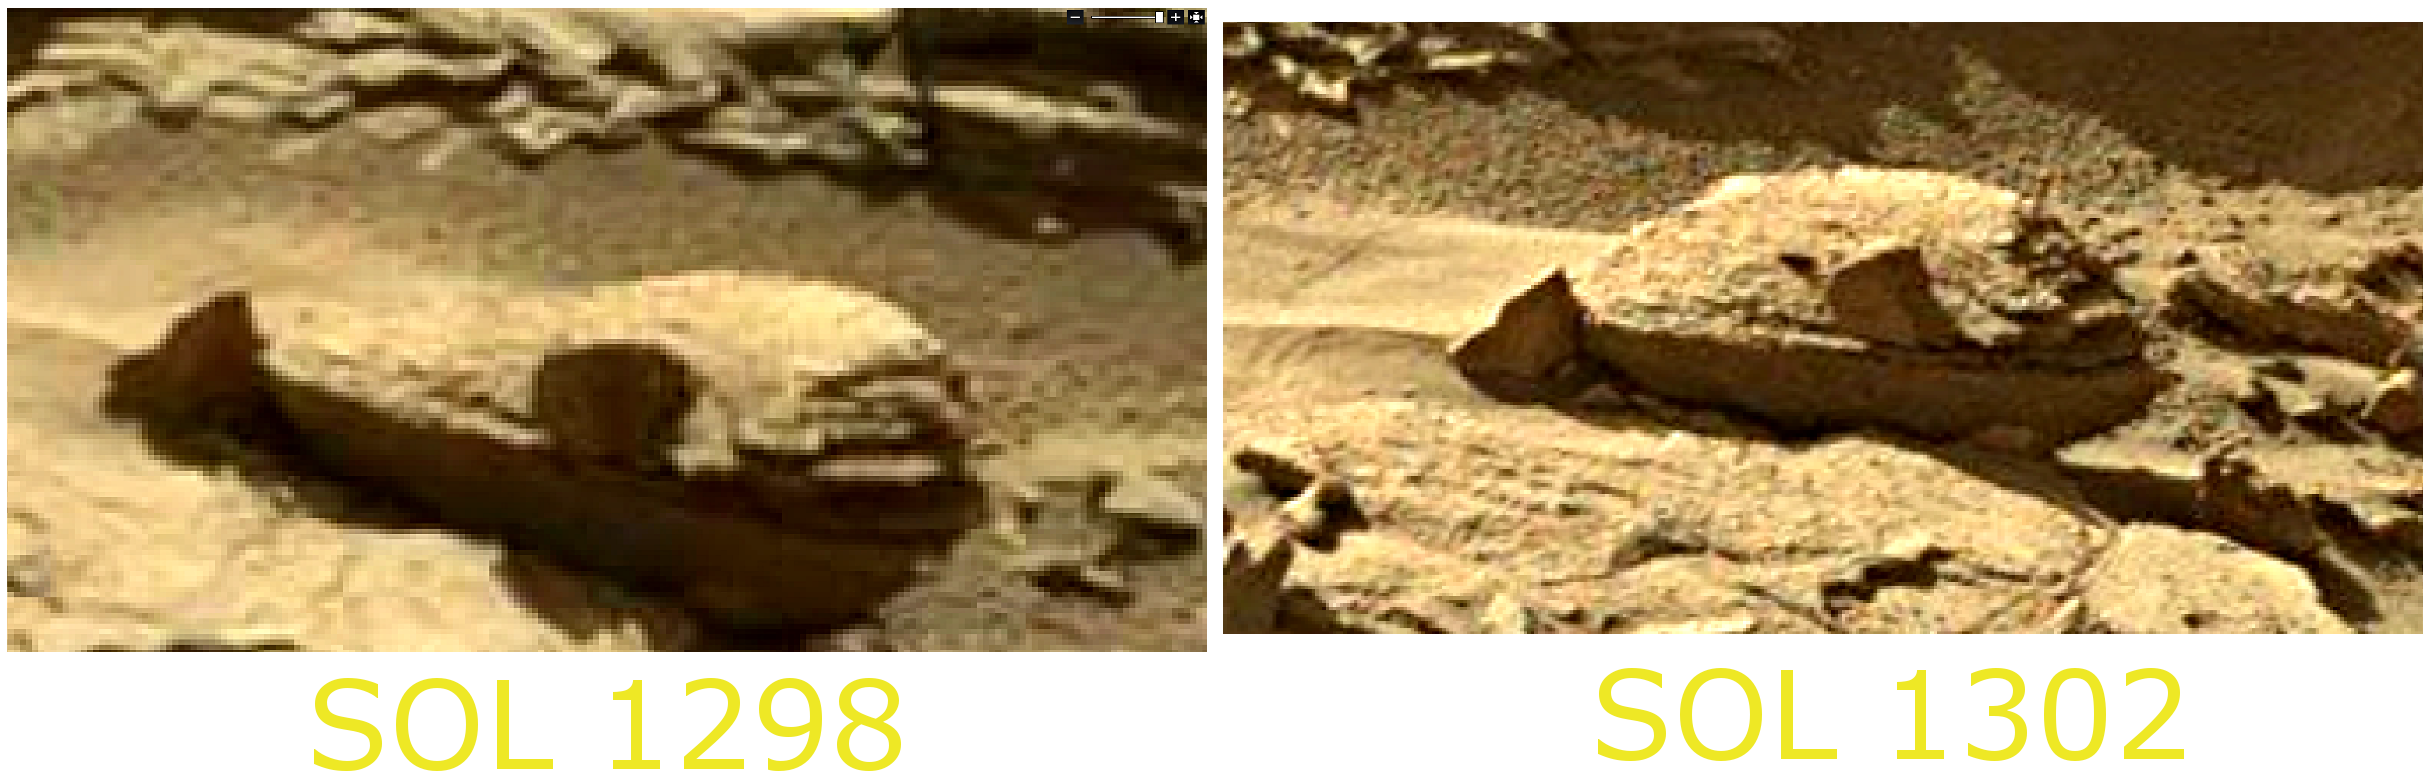 mars sol 1302 anomaly-artifacts 4 sbs - was life on mars